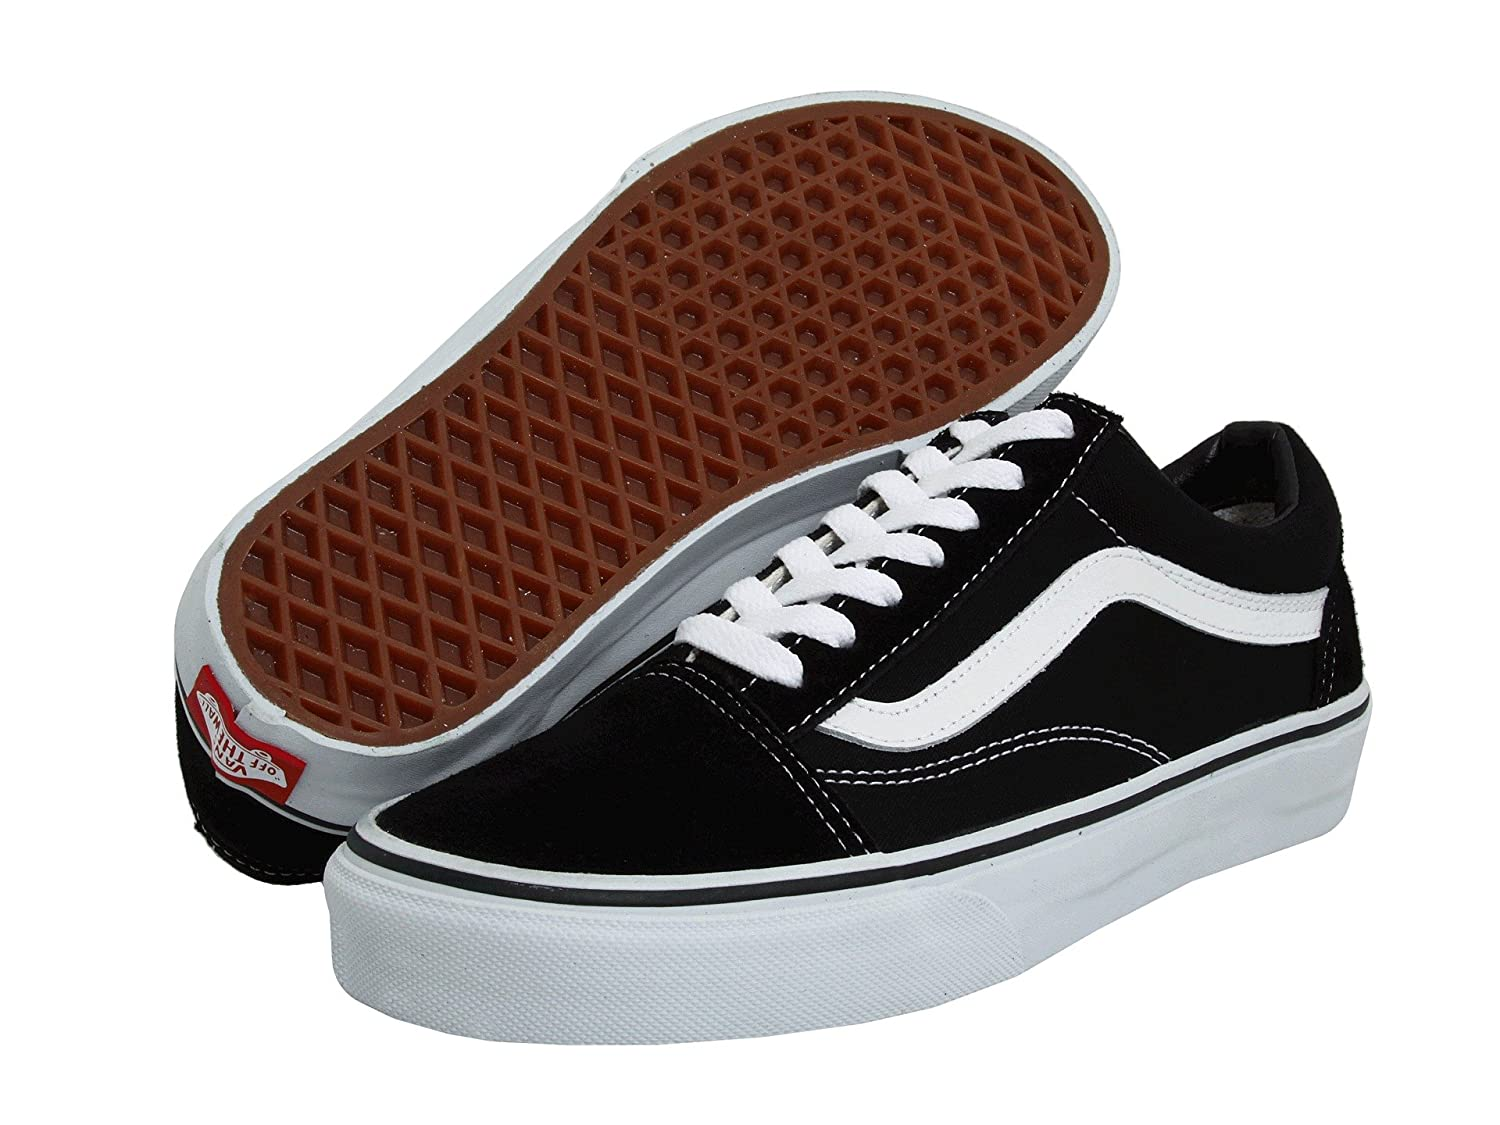 Vans Unisex Old Skool Classic Skate Shoes B075W7HTFG 14.5 B(M) US Women / 13 D(M) US Men|(Canvas) Black/White